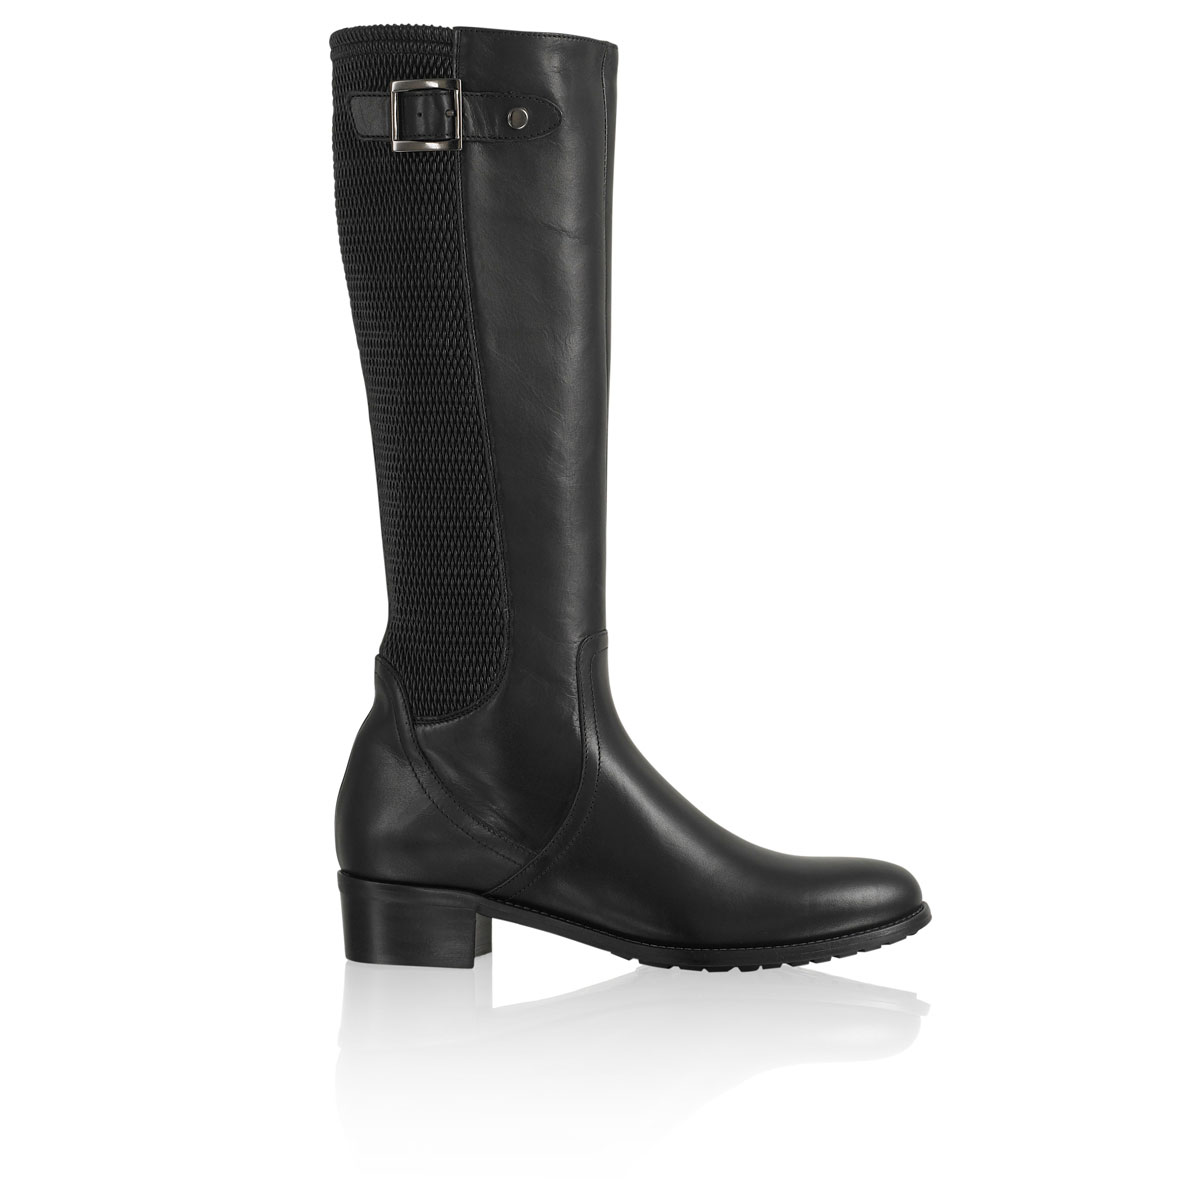 Russell And Bromley OMNI-DRY Stretch Riding Boot